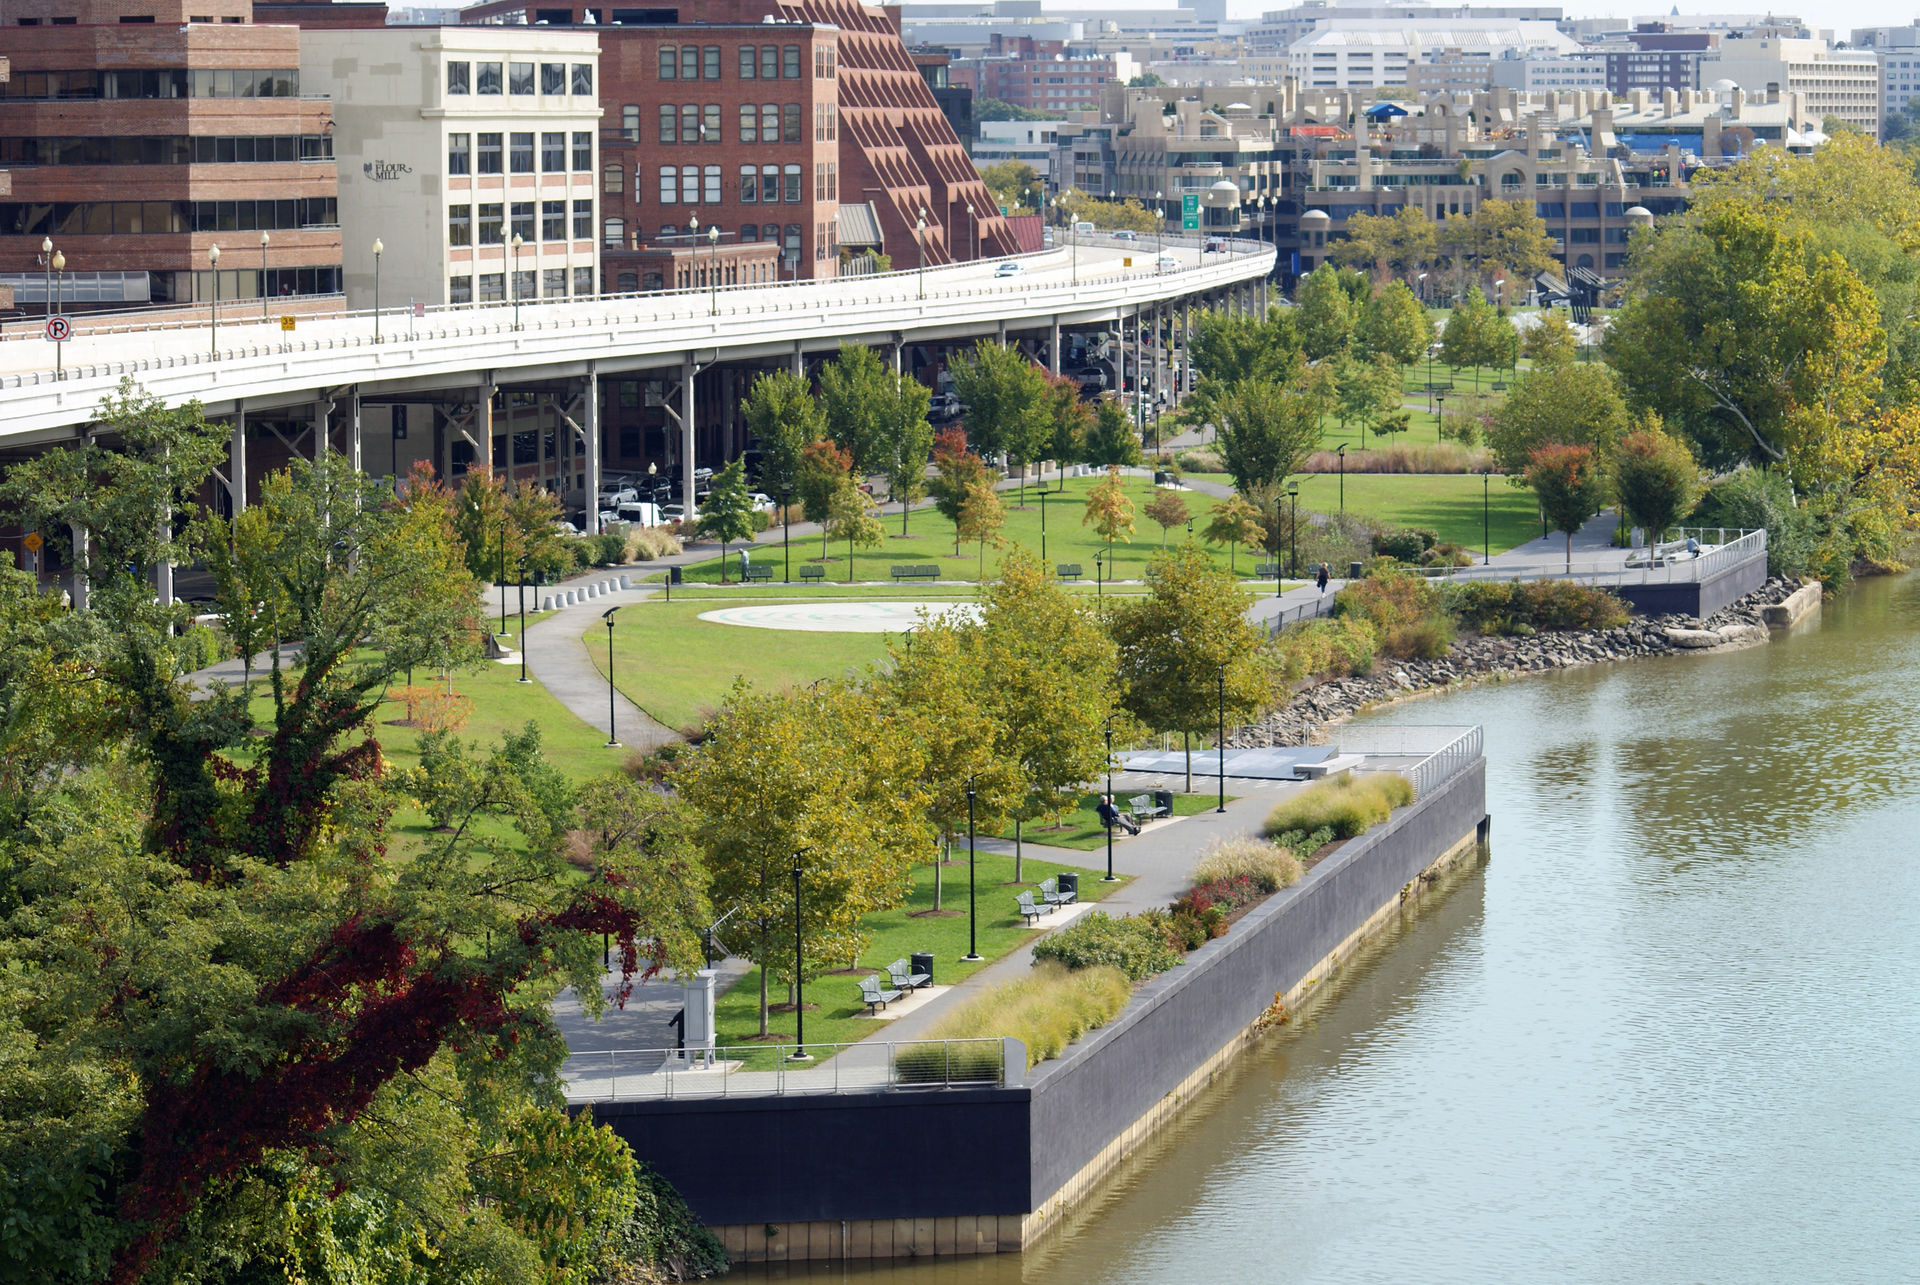 Georgetown Waterfront Park: SONY DSC